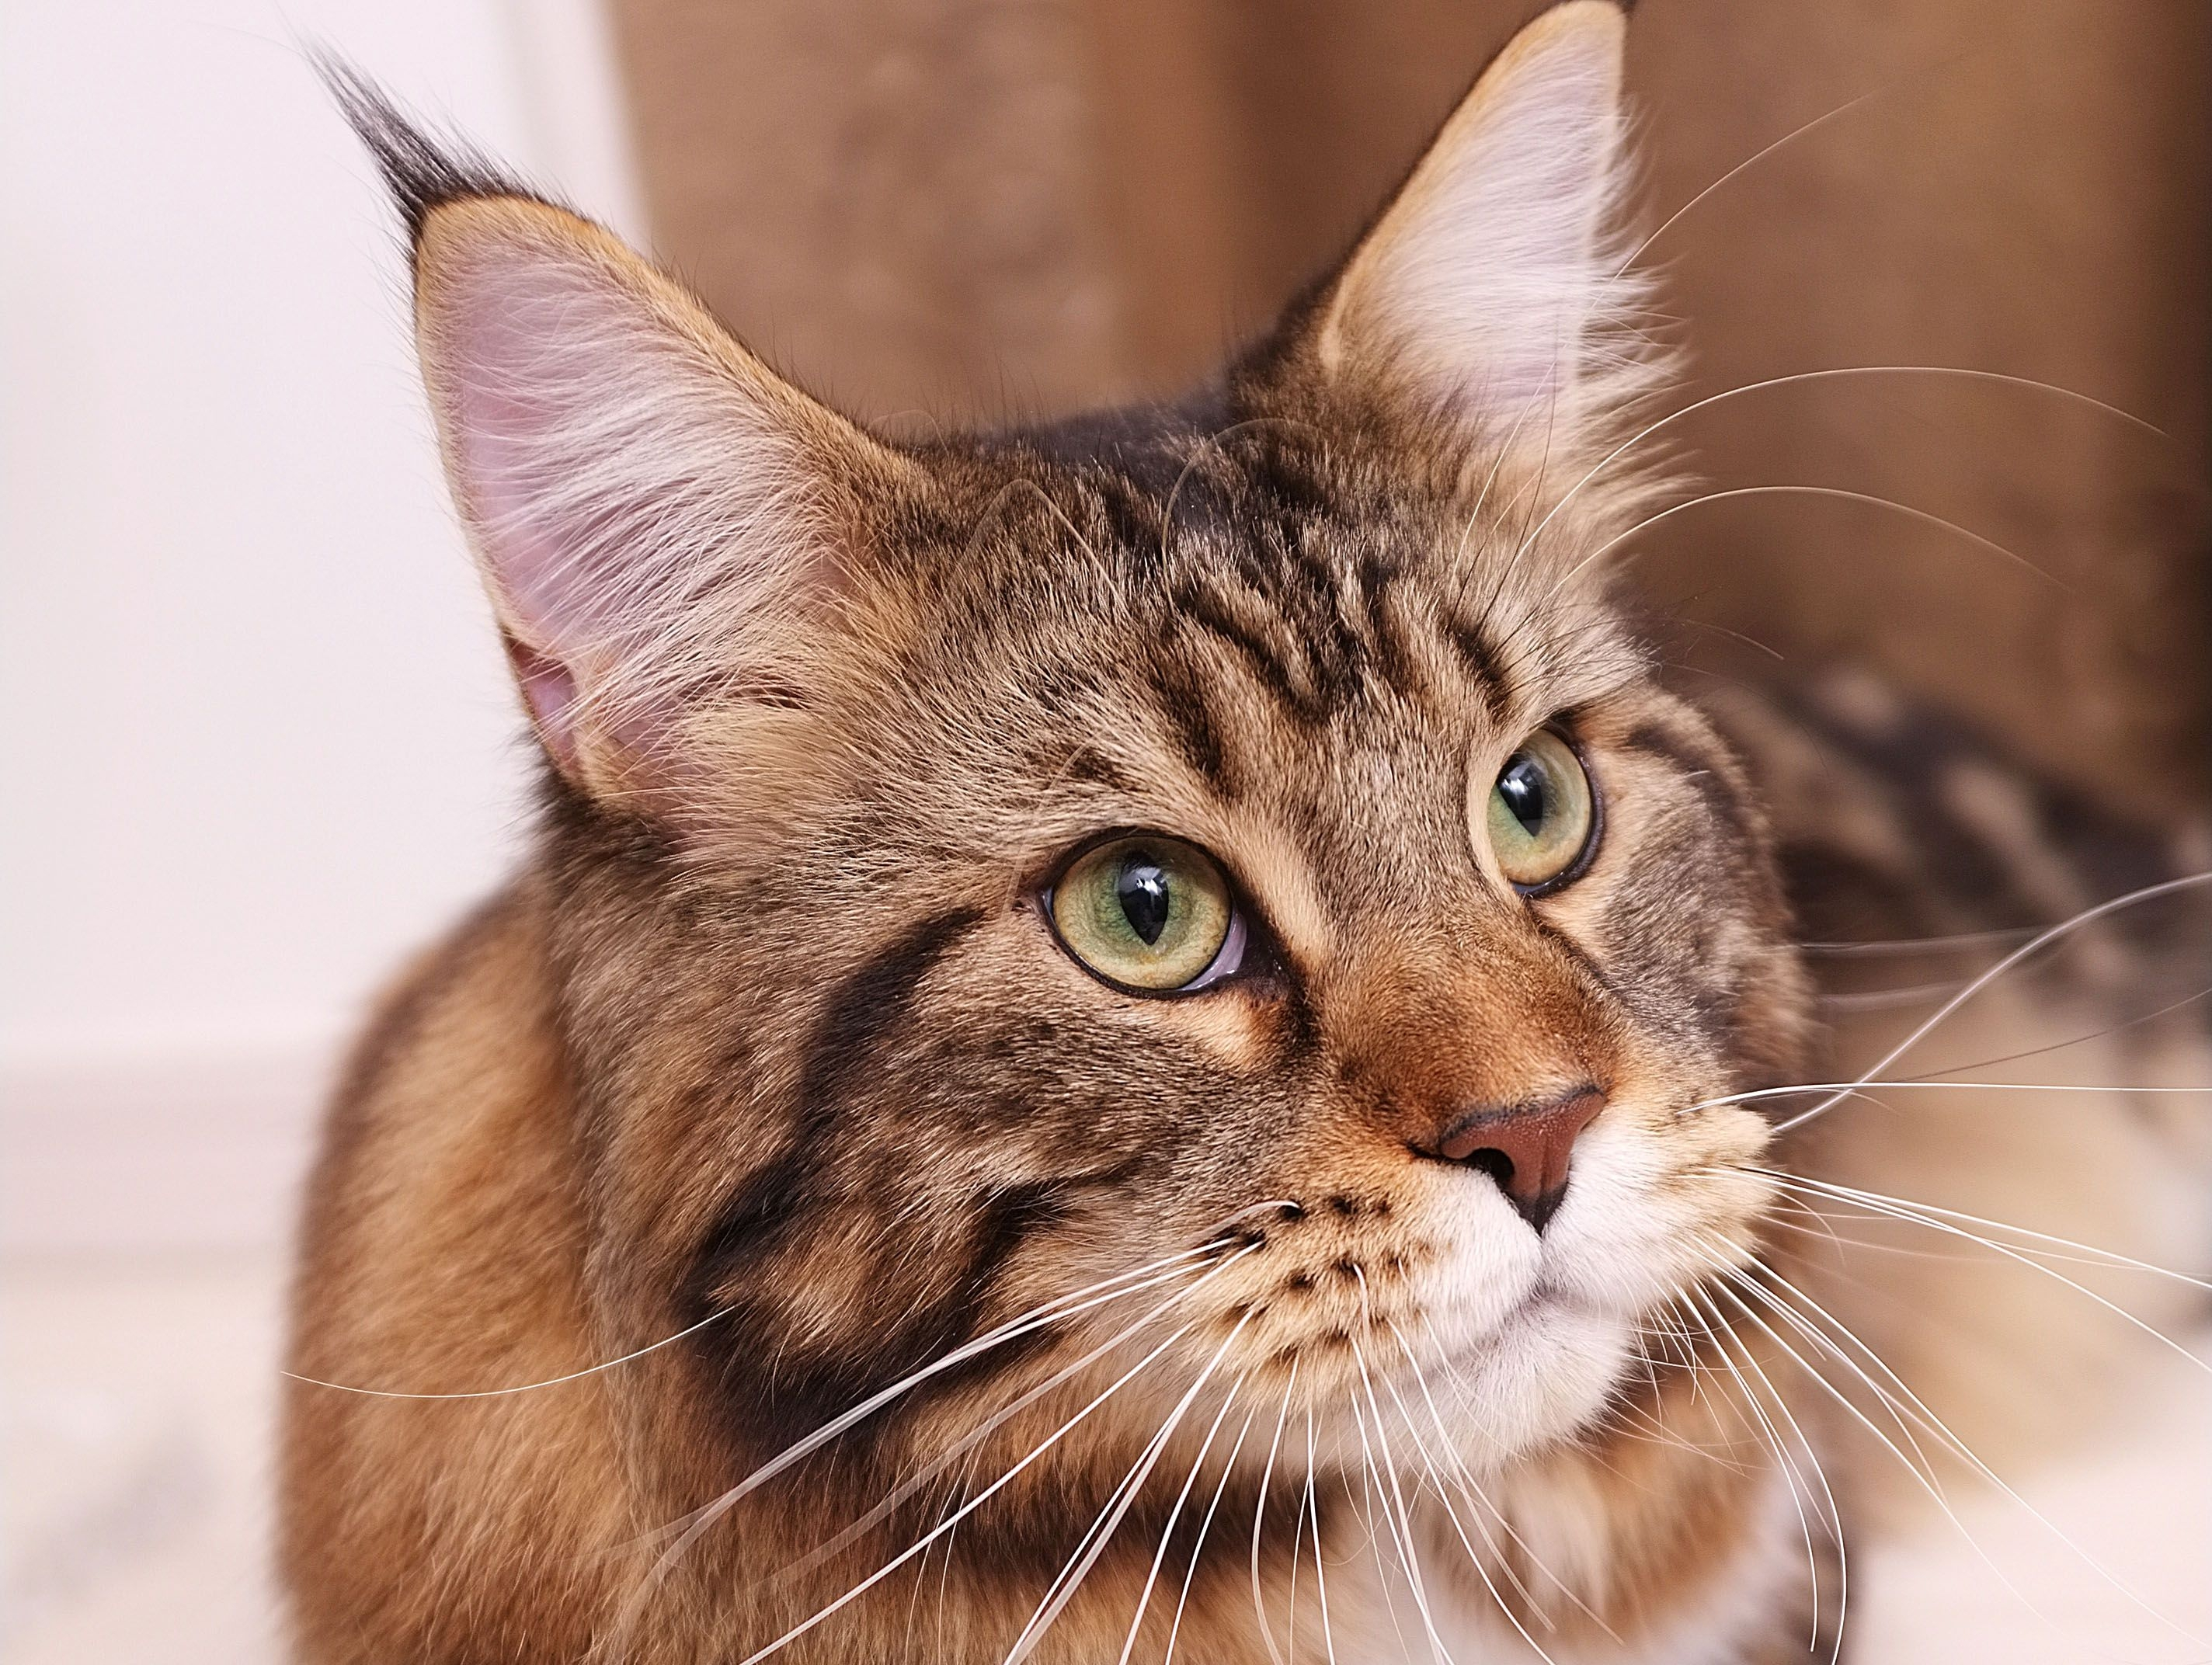 110173 download wallpaper Animals, Cat, Maine Coon, Maine, Fluffy, Muzzle, Fat, Thick screensavers and pictures for free